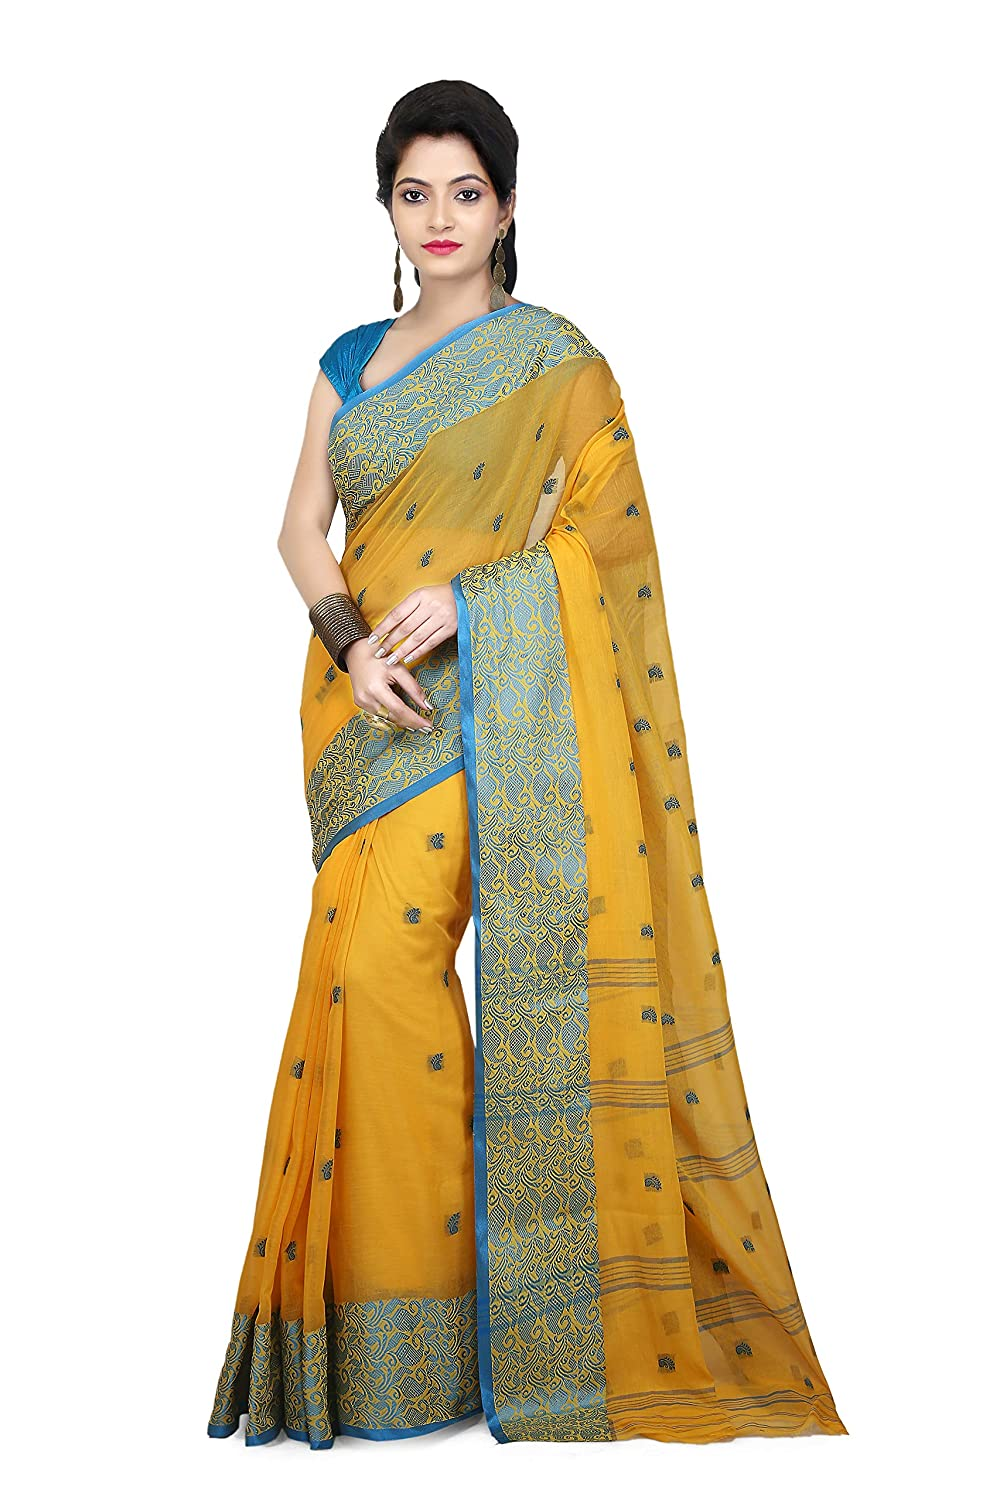 WoodenTant Women's Tant Cotton Yellow Colour Saree Without Blouse Piece